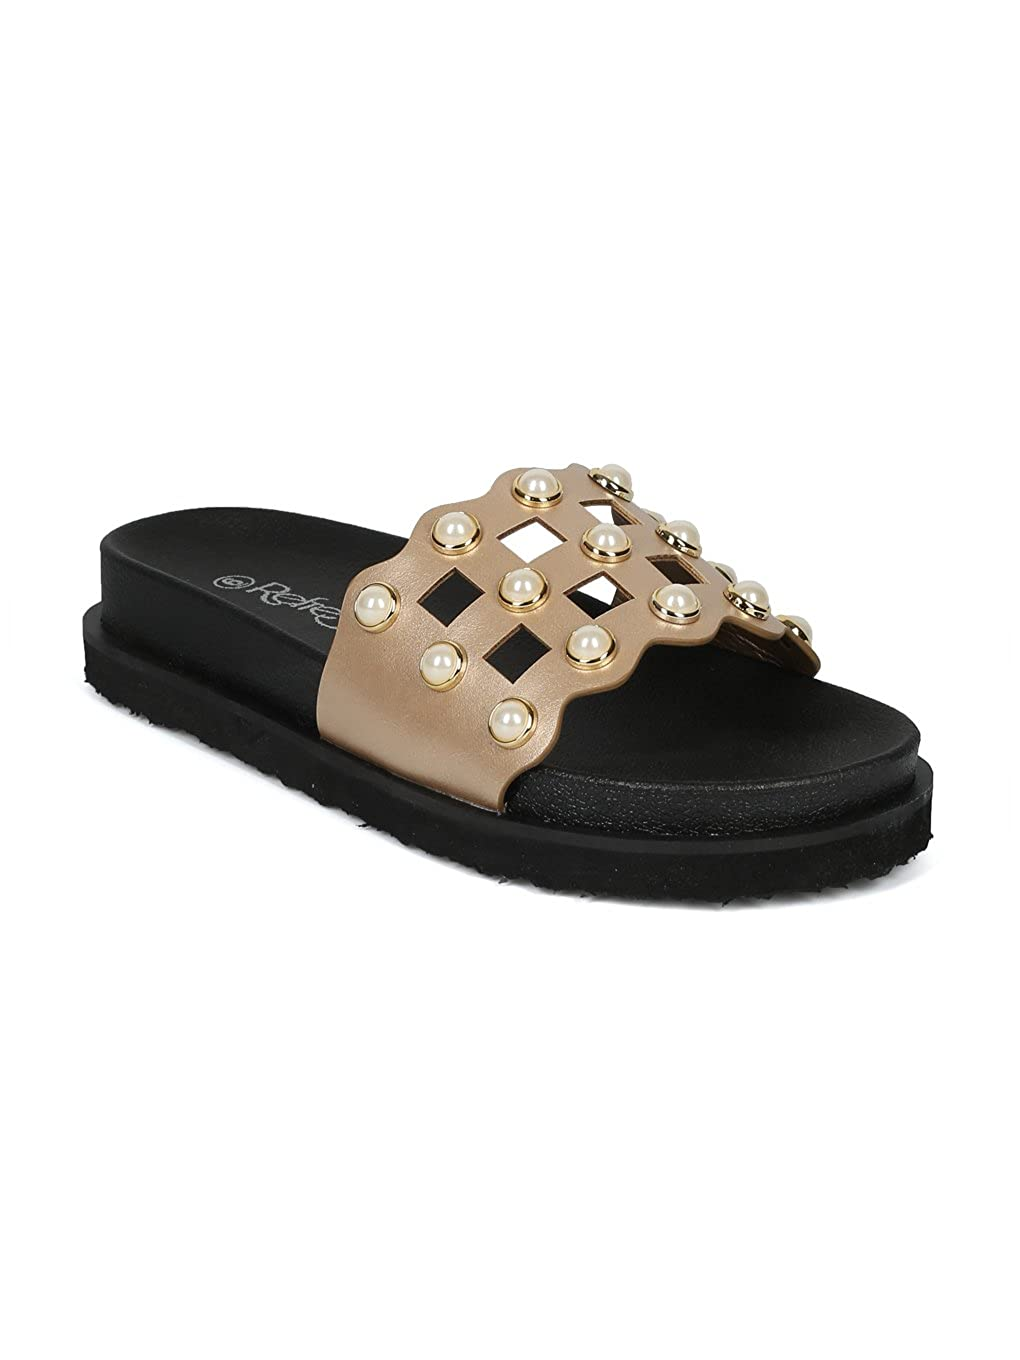 Alrisco Women Leatherette Faux Pearl Studded Caged Footbed Slide HG31